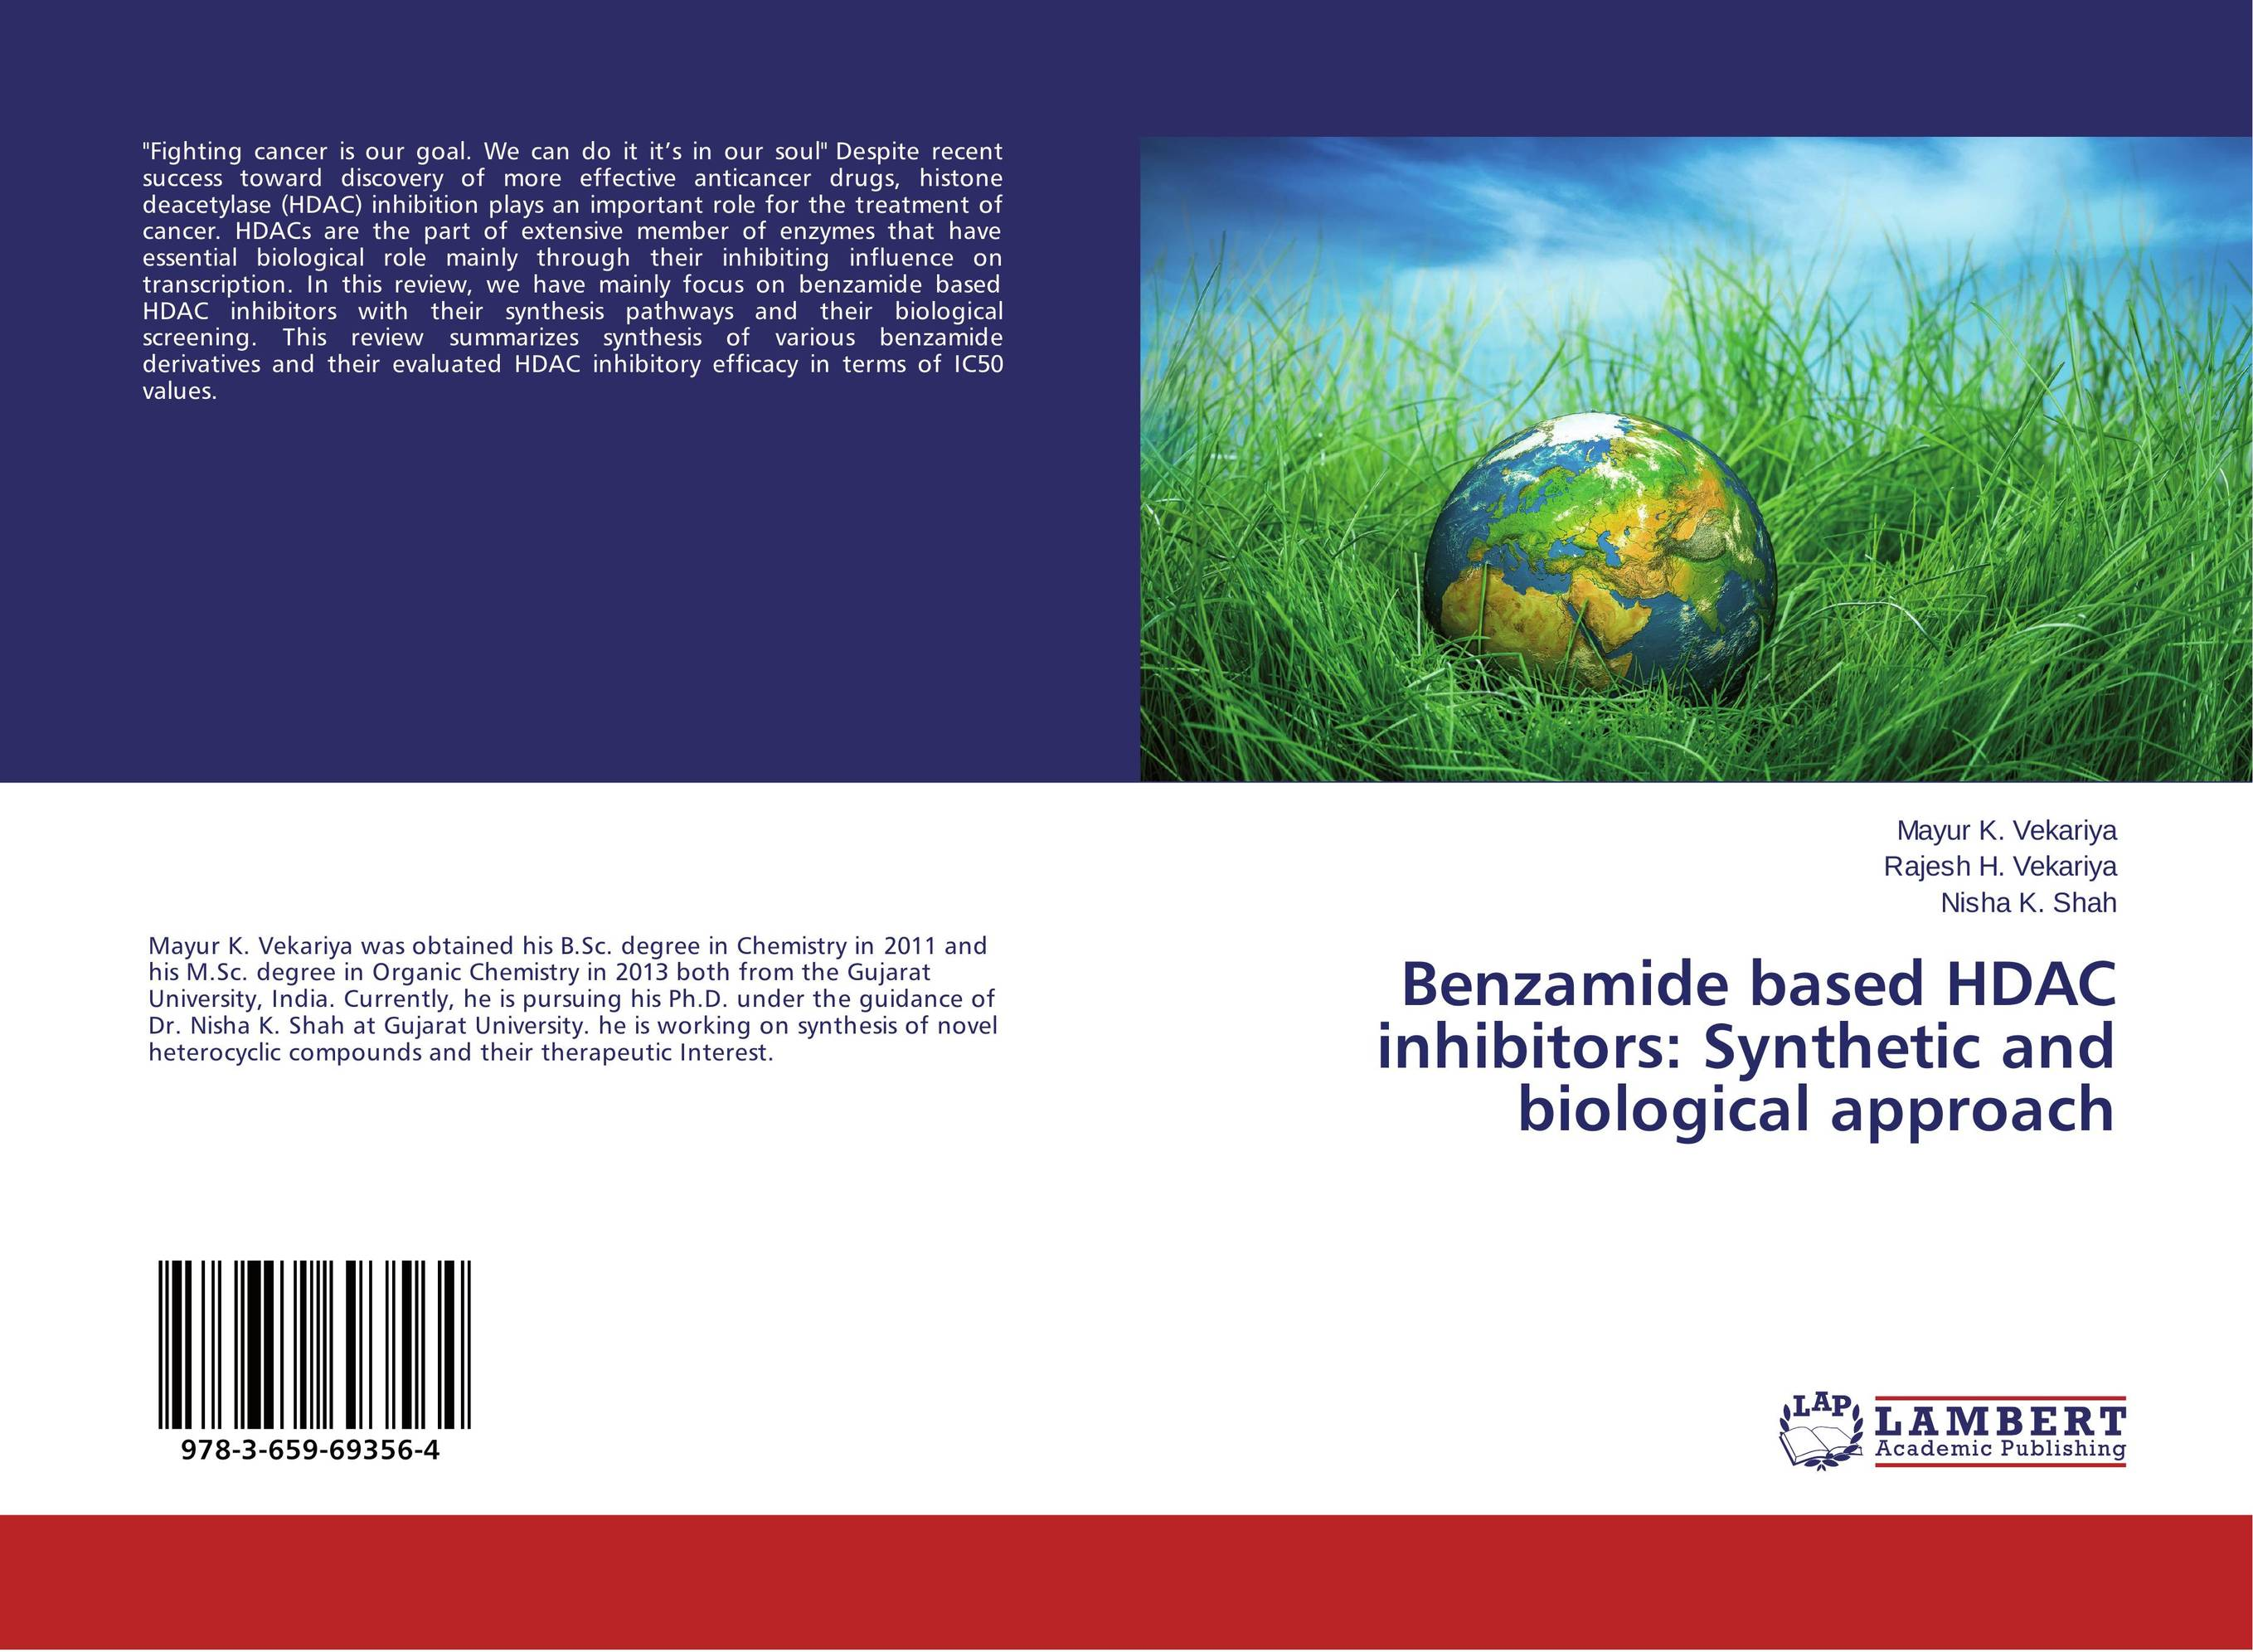 Benzamide based HDAC inhibitors: Synthetic and biological approach rakesh kumar khandal and sapana kaushik coal tar pitch with reduced pahs and thermosets based on it